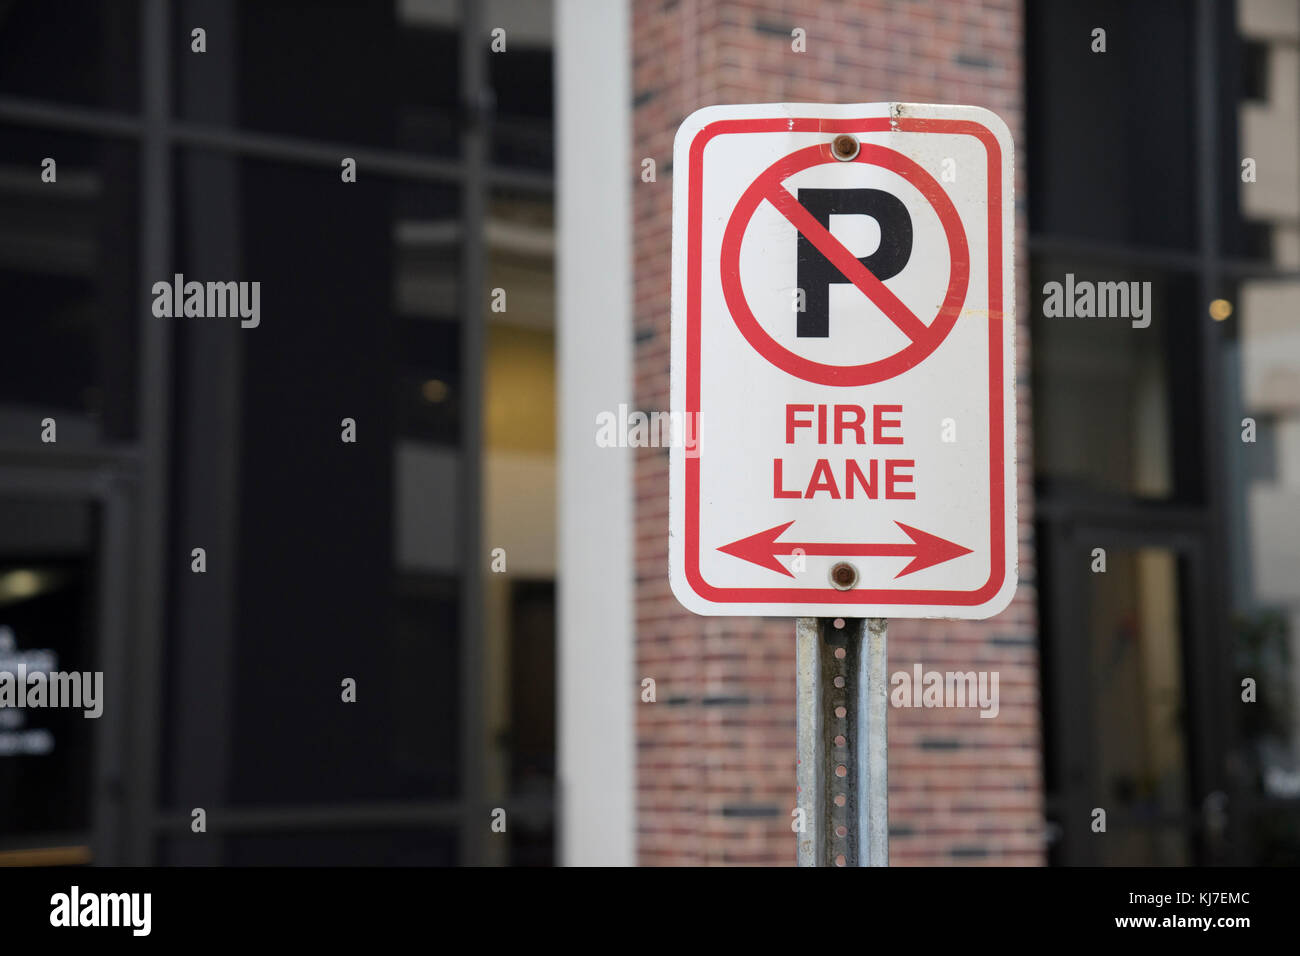 Fire Lane No Parking Sign Outside - Stock Image